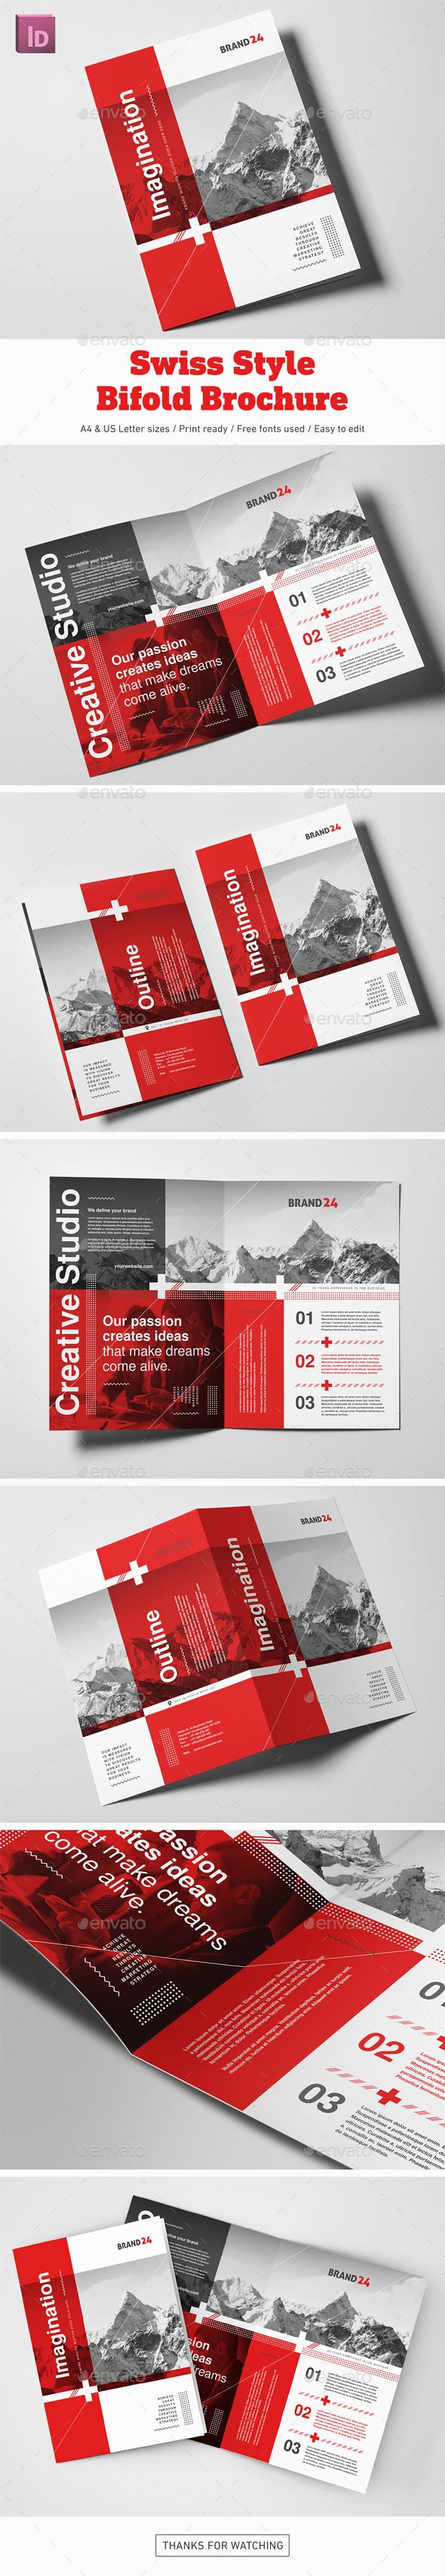 Swiss Style Bifold Brochure — InDesign INDD #indesign #corporate • Download ➝ https://graphicriver.net/item/swiss-style-bifold-brochure/20188414?ref=pxcr